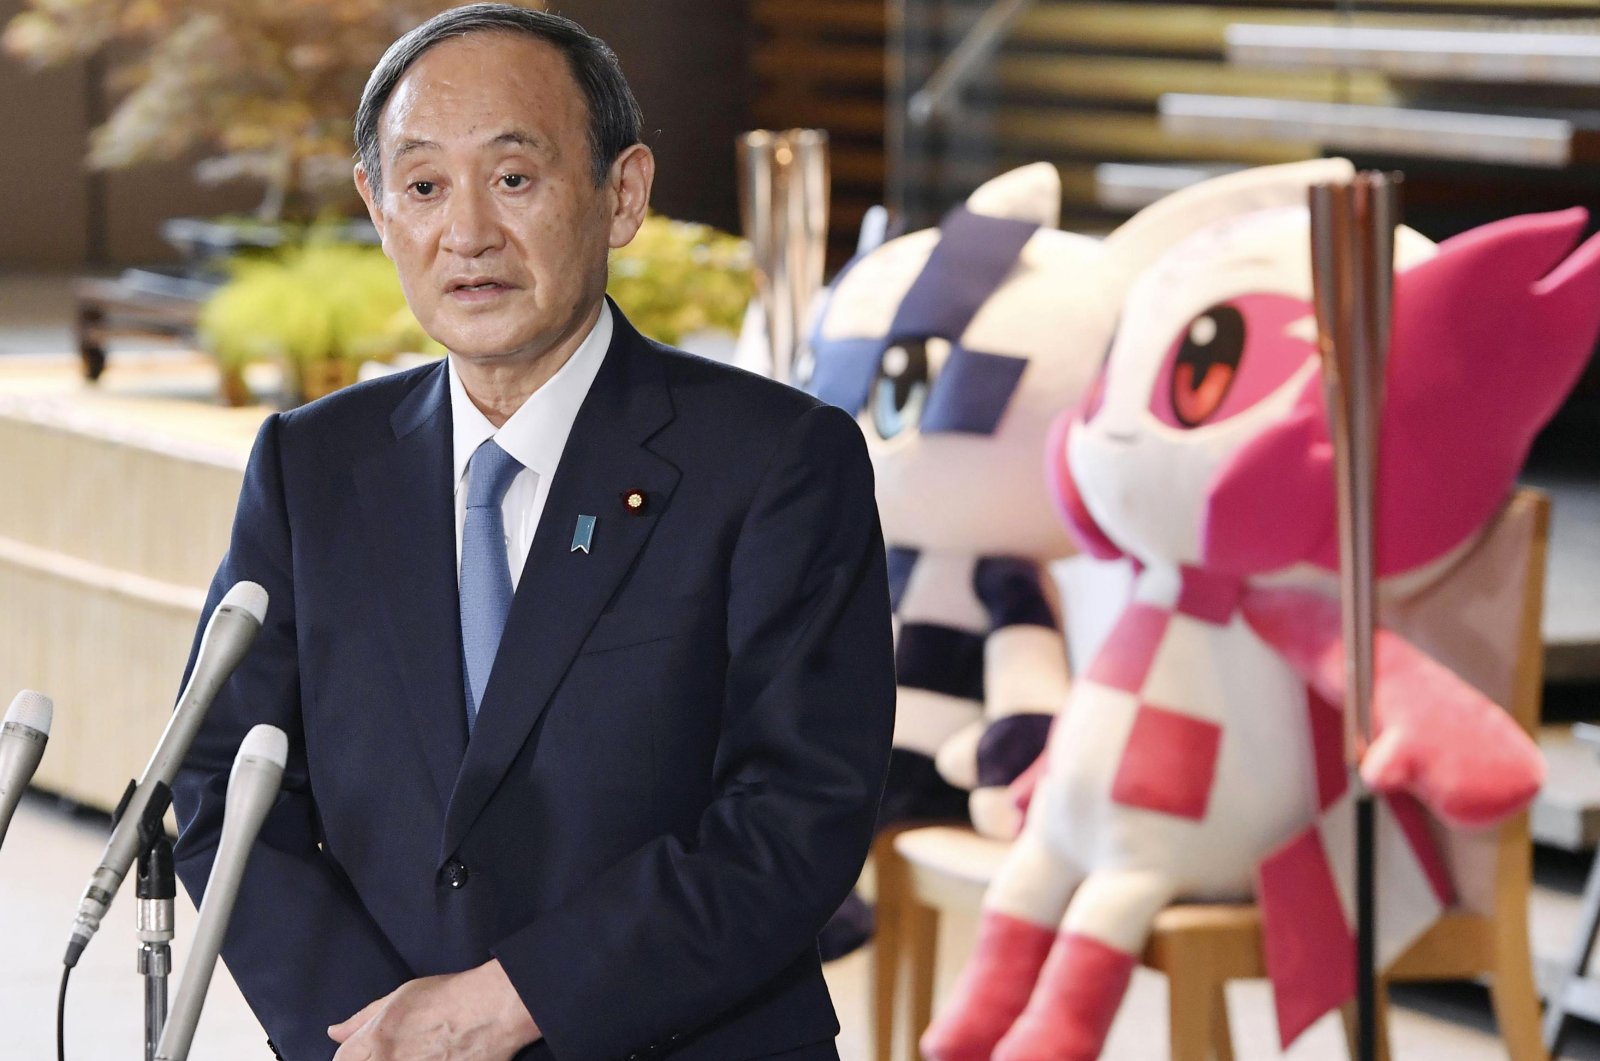 Japan's Prime Minister Yoshihide Suga speaks to the media in front of the Olympics mascots at the prime minister's office in Tokyo, July 1, 2021. (AP Photo)